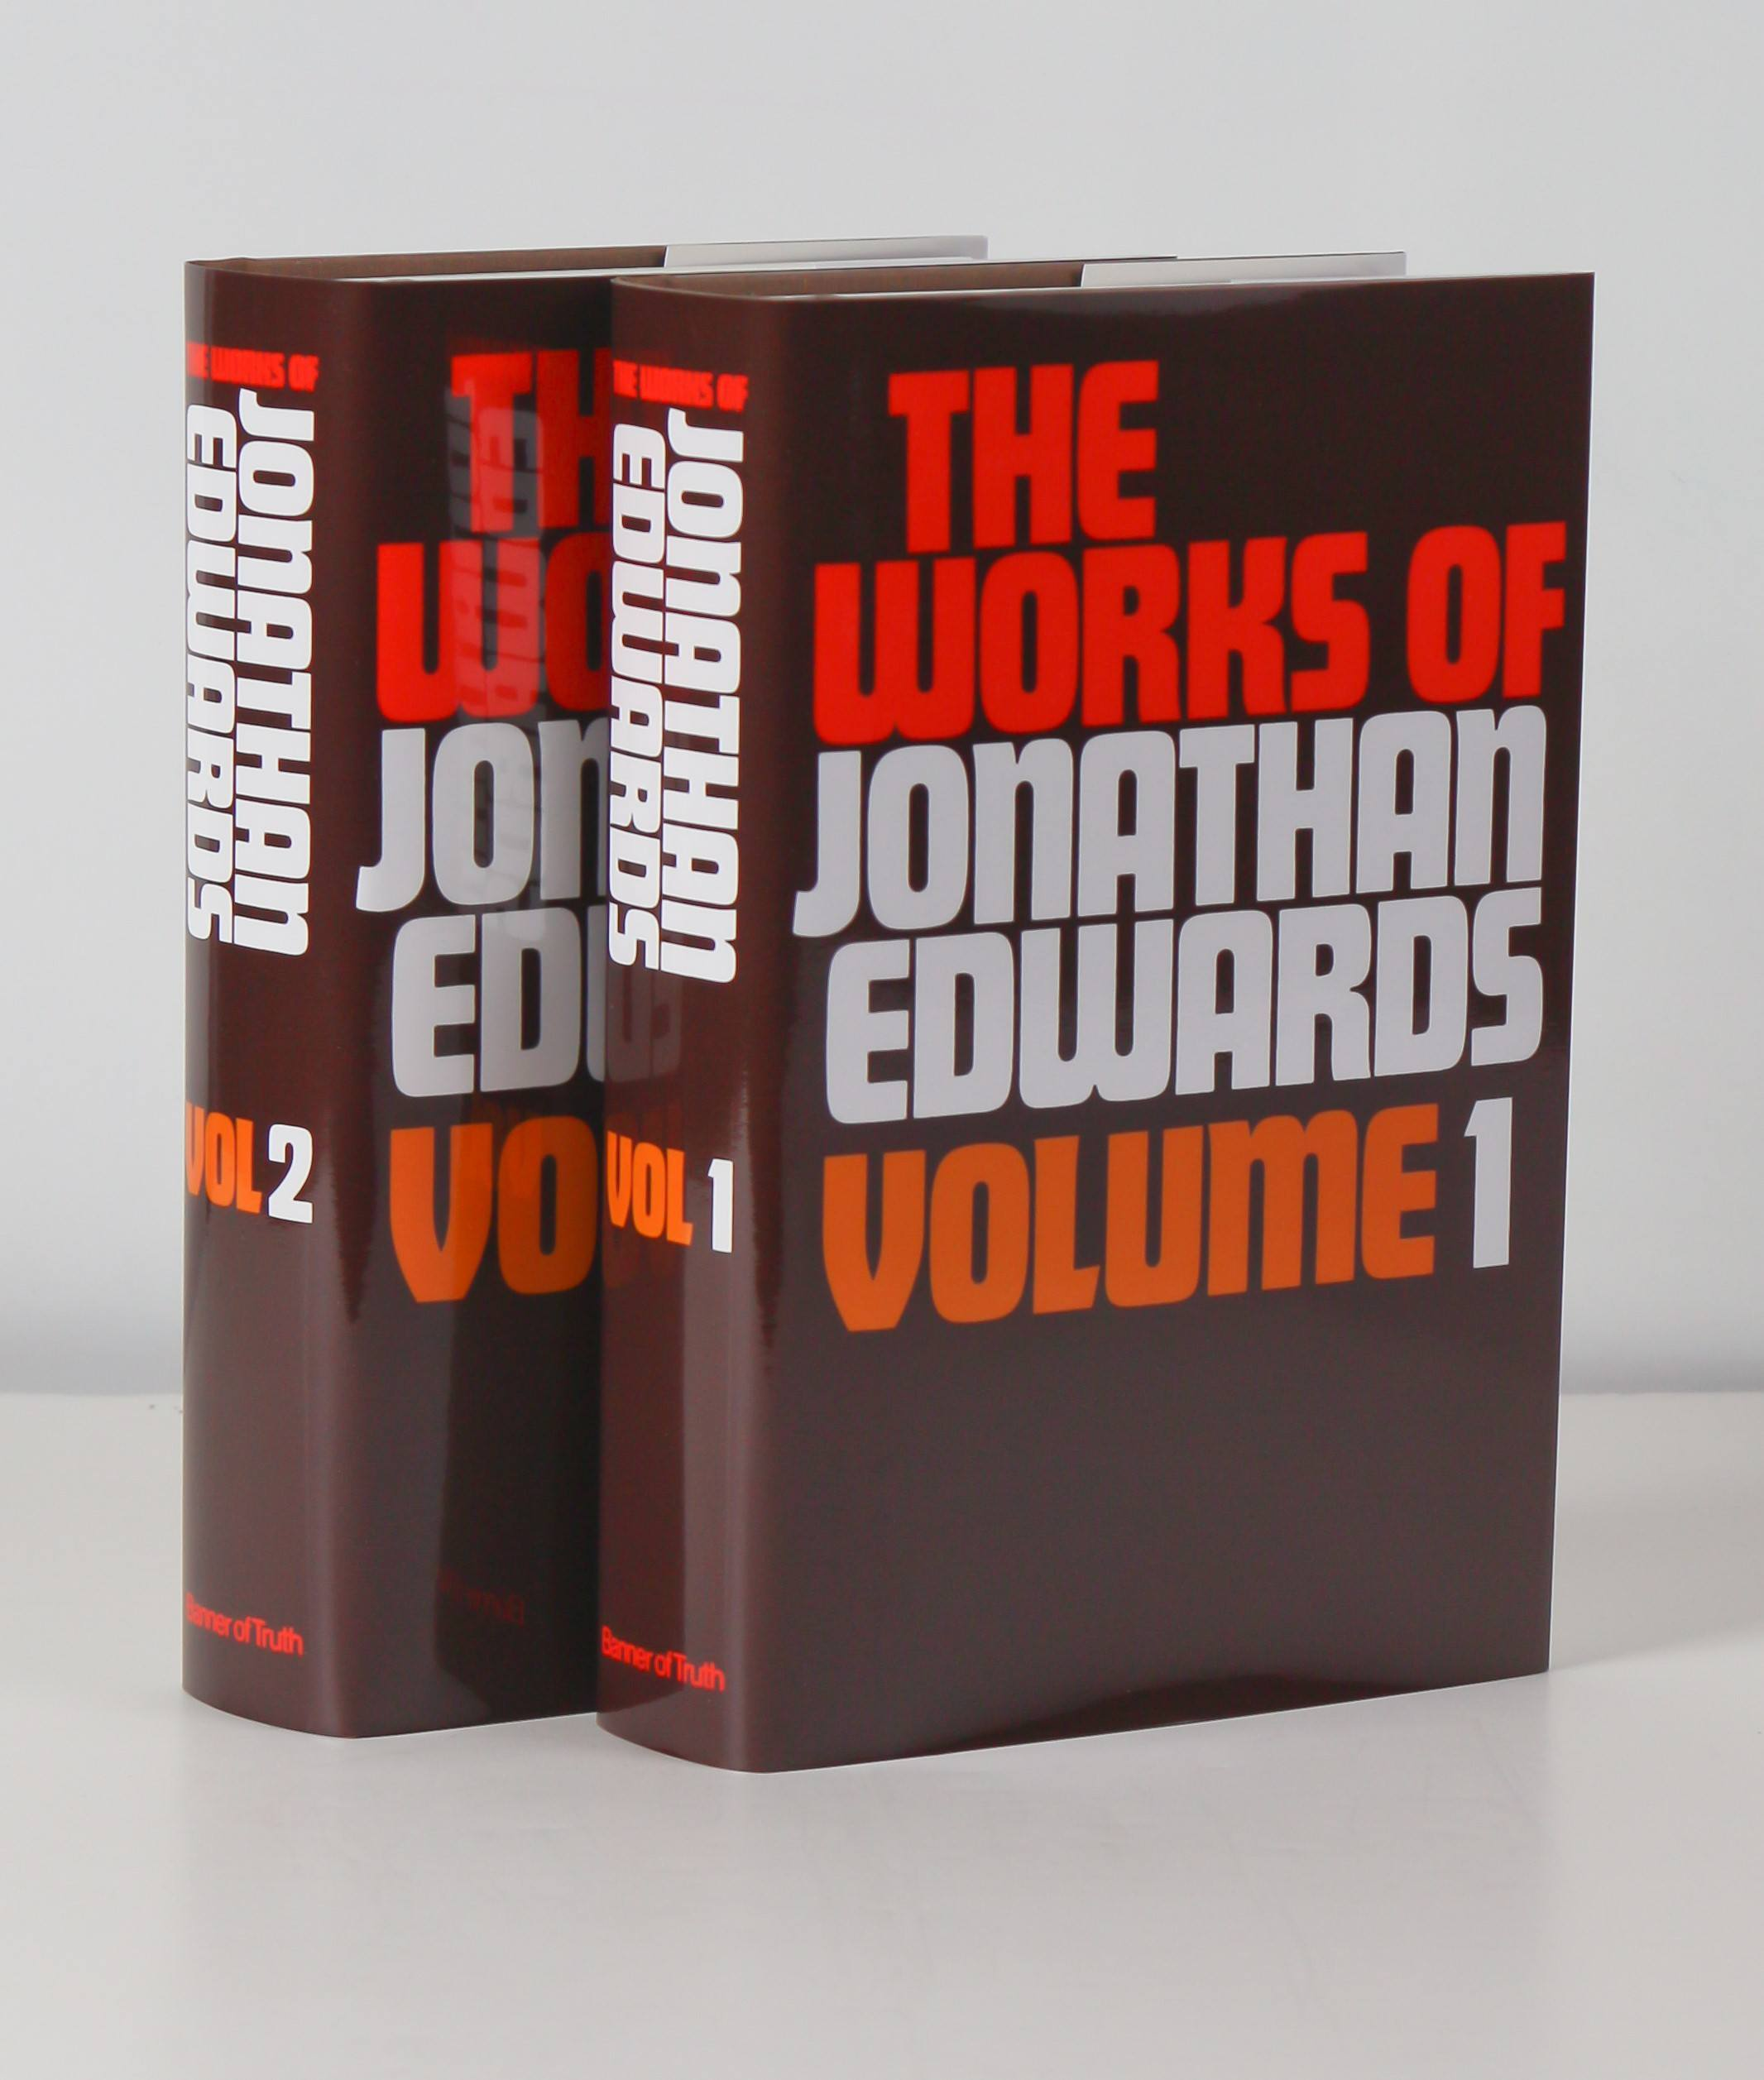 jonathan edwards writings Jonathan edwards dedicated his time to the service of god, spending the majority of his life as a preacher, theologian, and missionary edwards' brilliance as a theologian and scholar is.